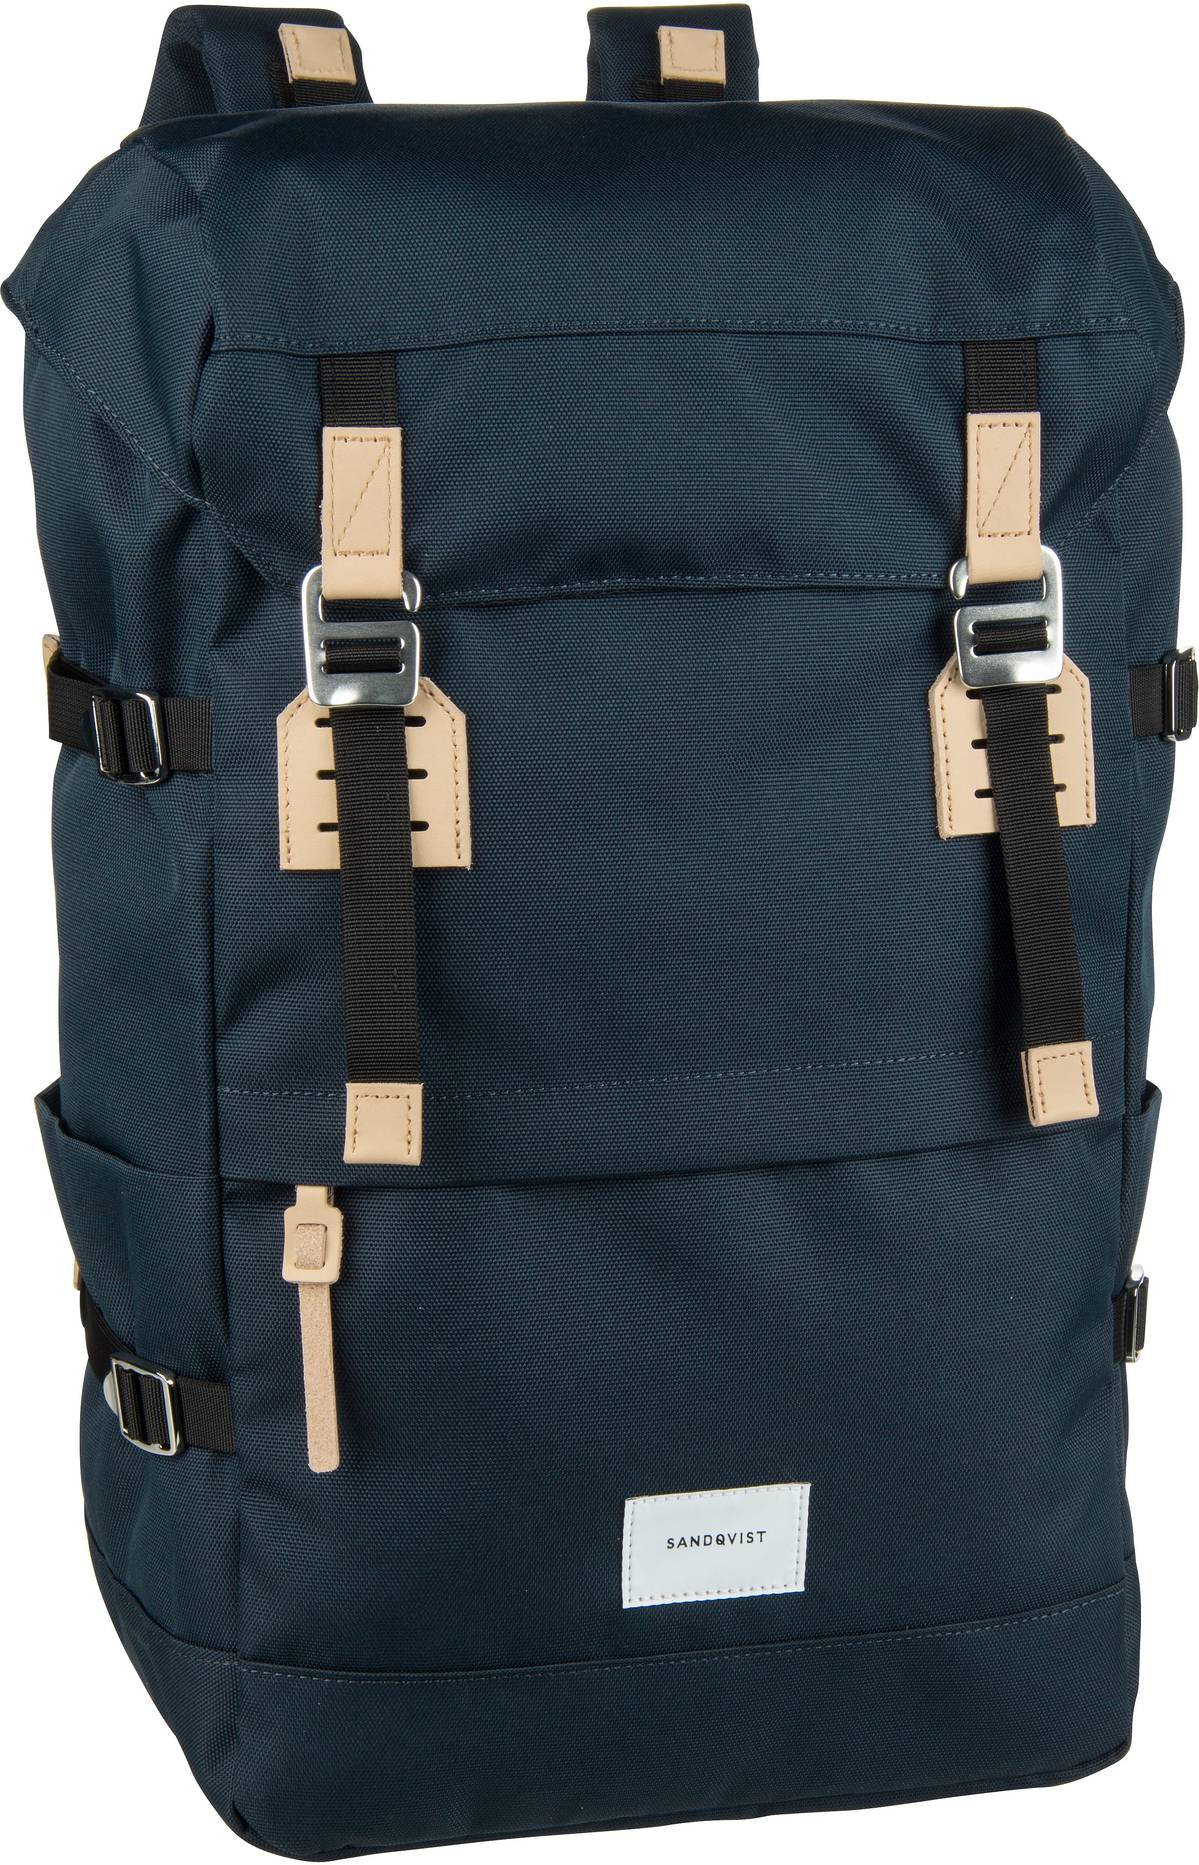 Laptoprucksack Harald Backpack Navy (21 Liter)